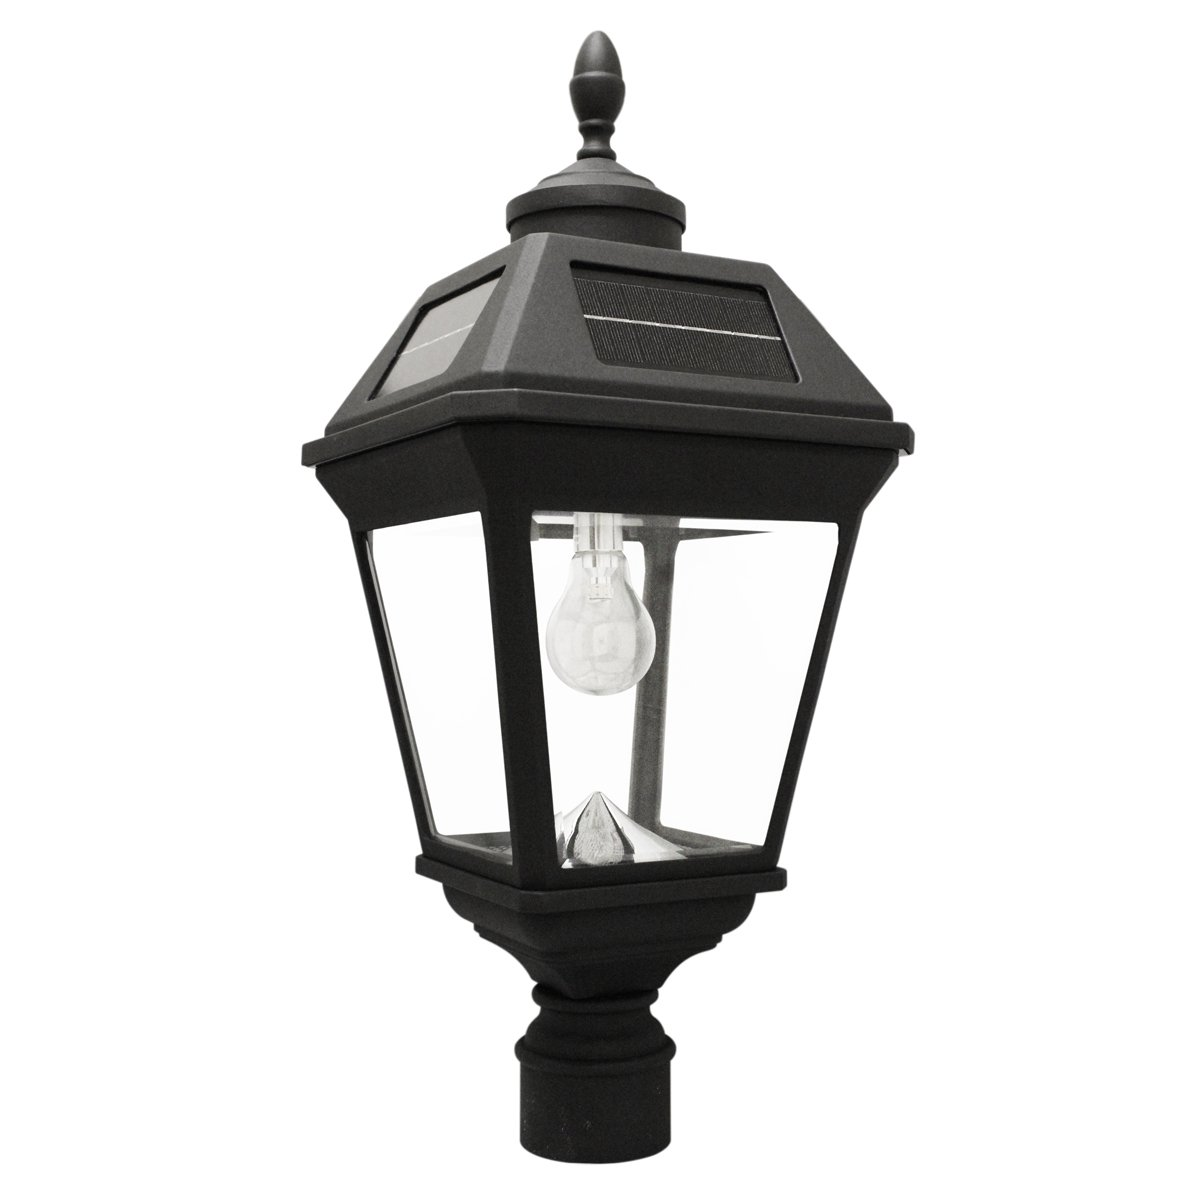 Gama Sonic Imperial Bulb Solar Lamp with GS Solar Light Bulb (3'' Fitter Mount), Black